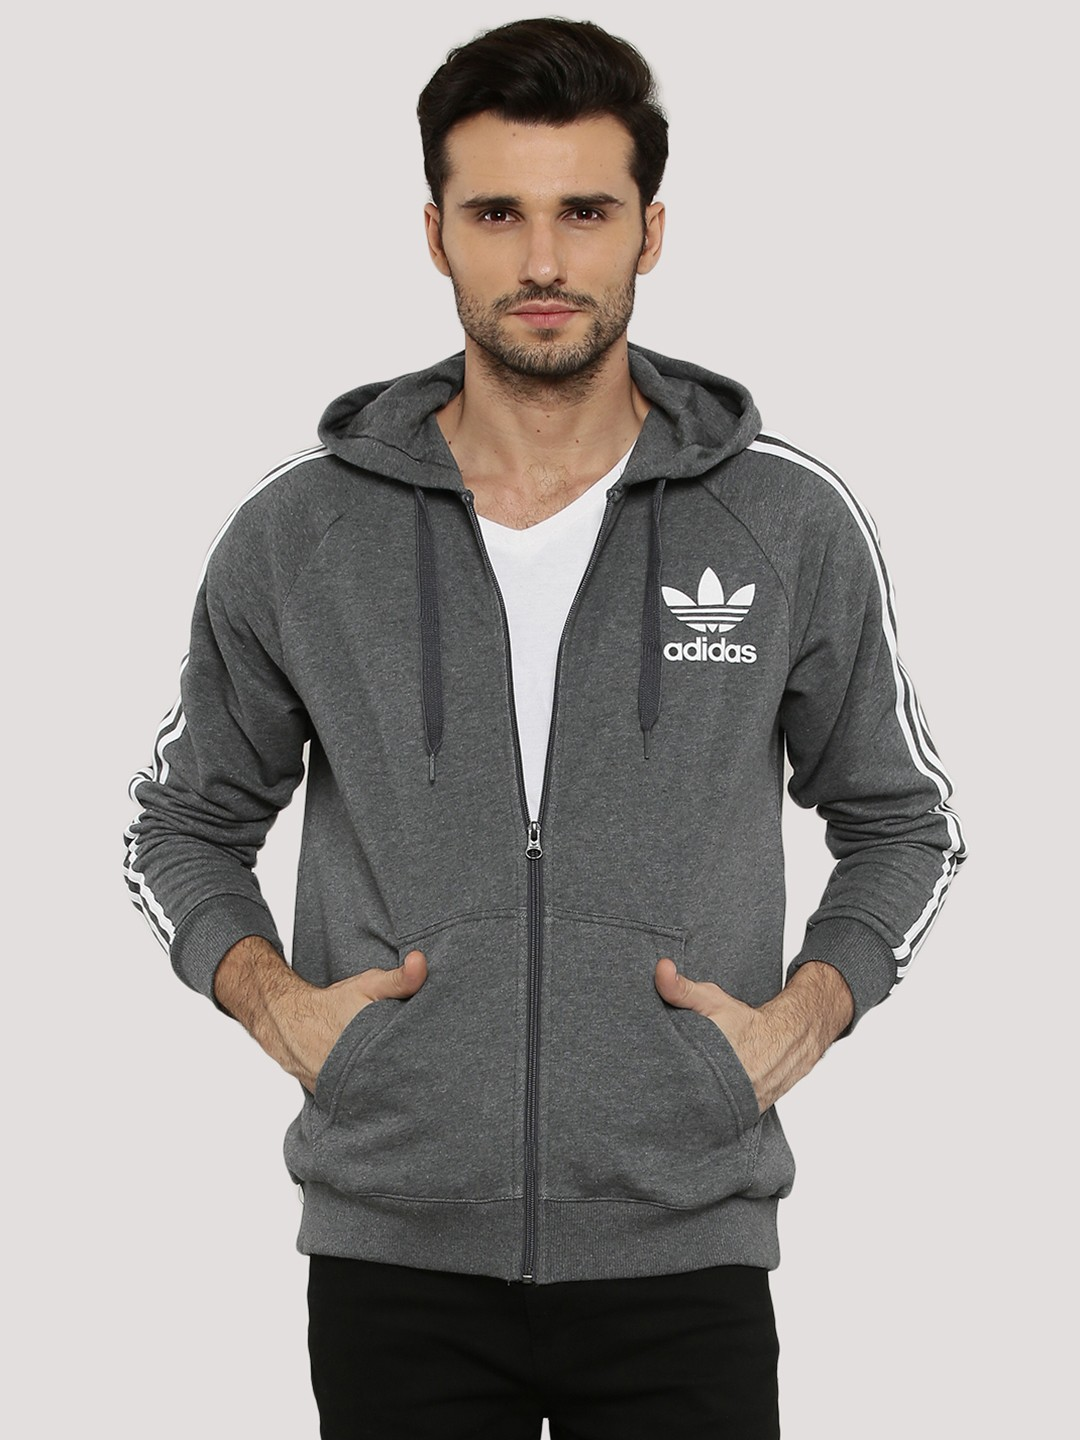 adidas sweaters men online